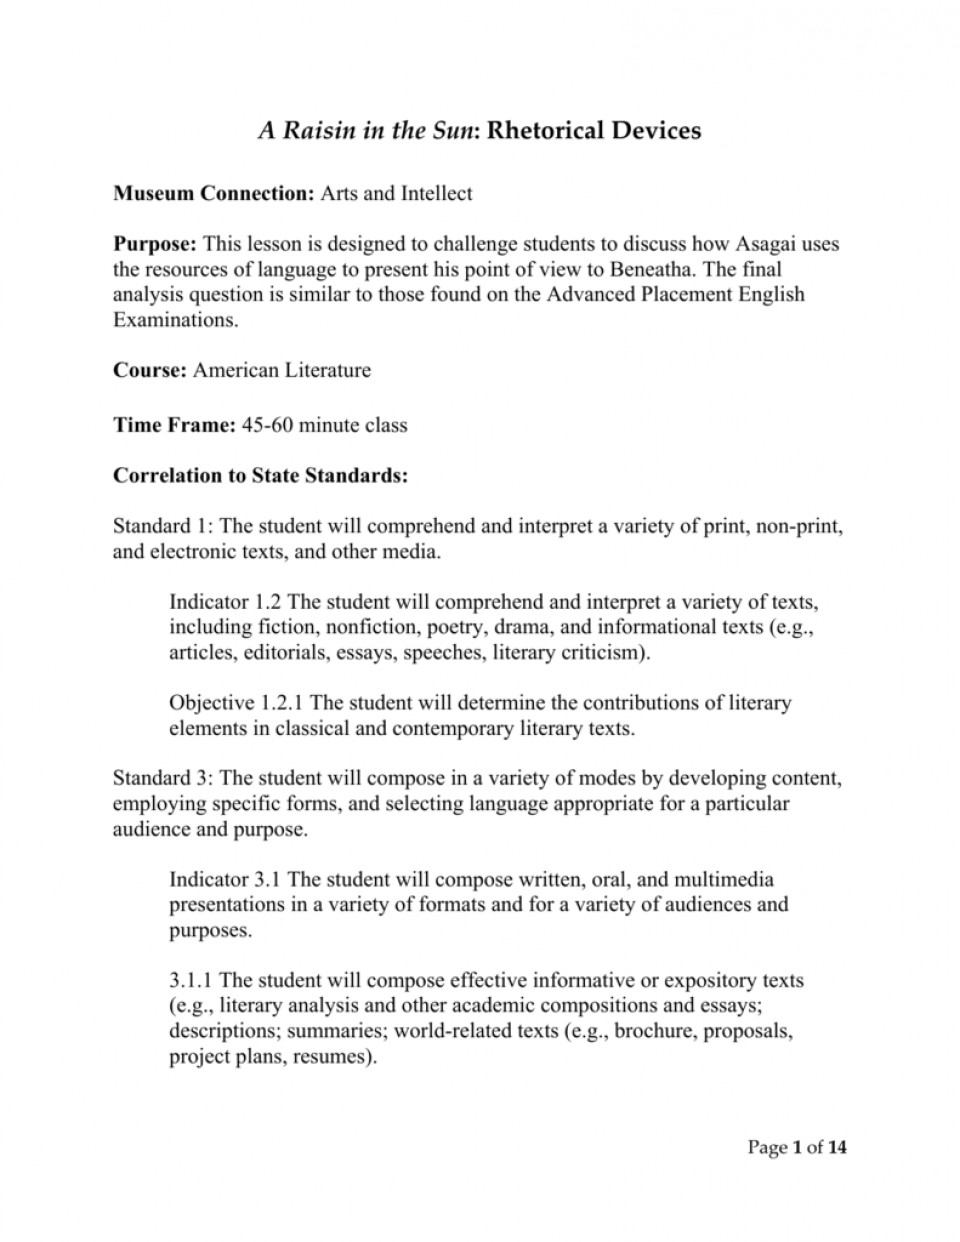 006 008718601 1 Essay Example Why Do Authors Use Rhetorical Devices In Frightening Essays Quizlet Brainly 960